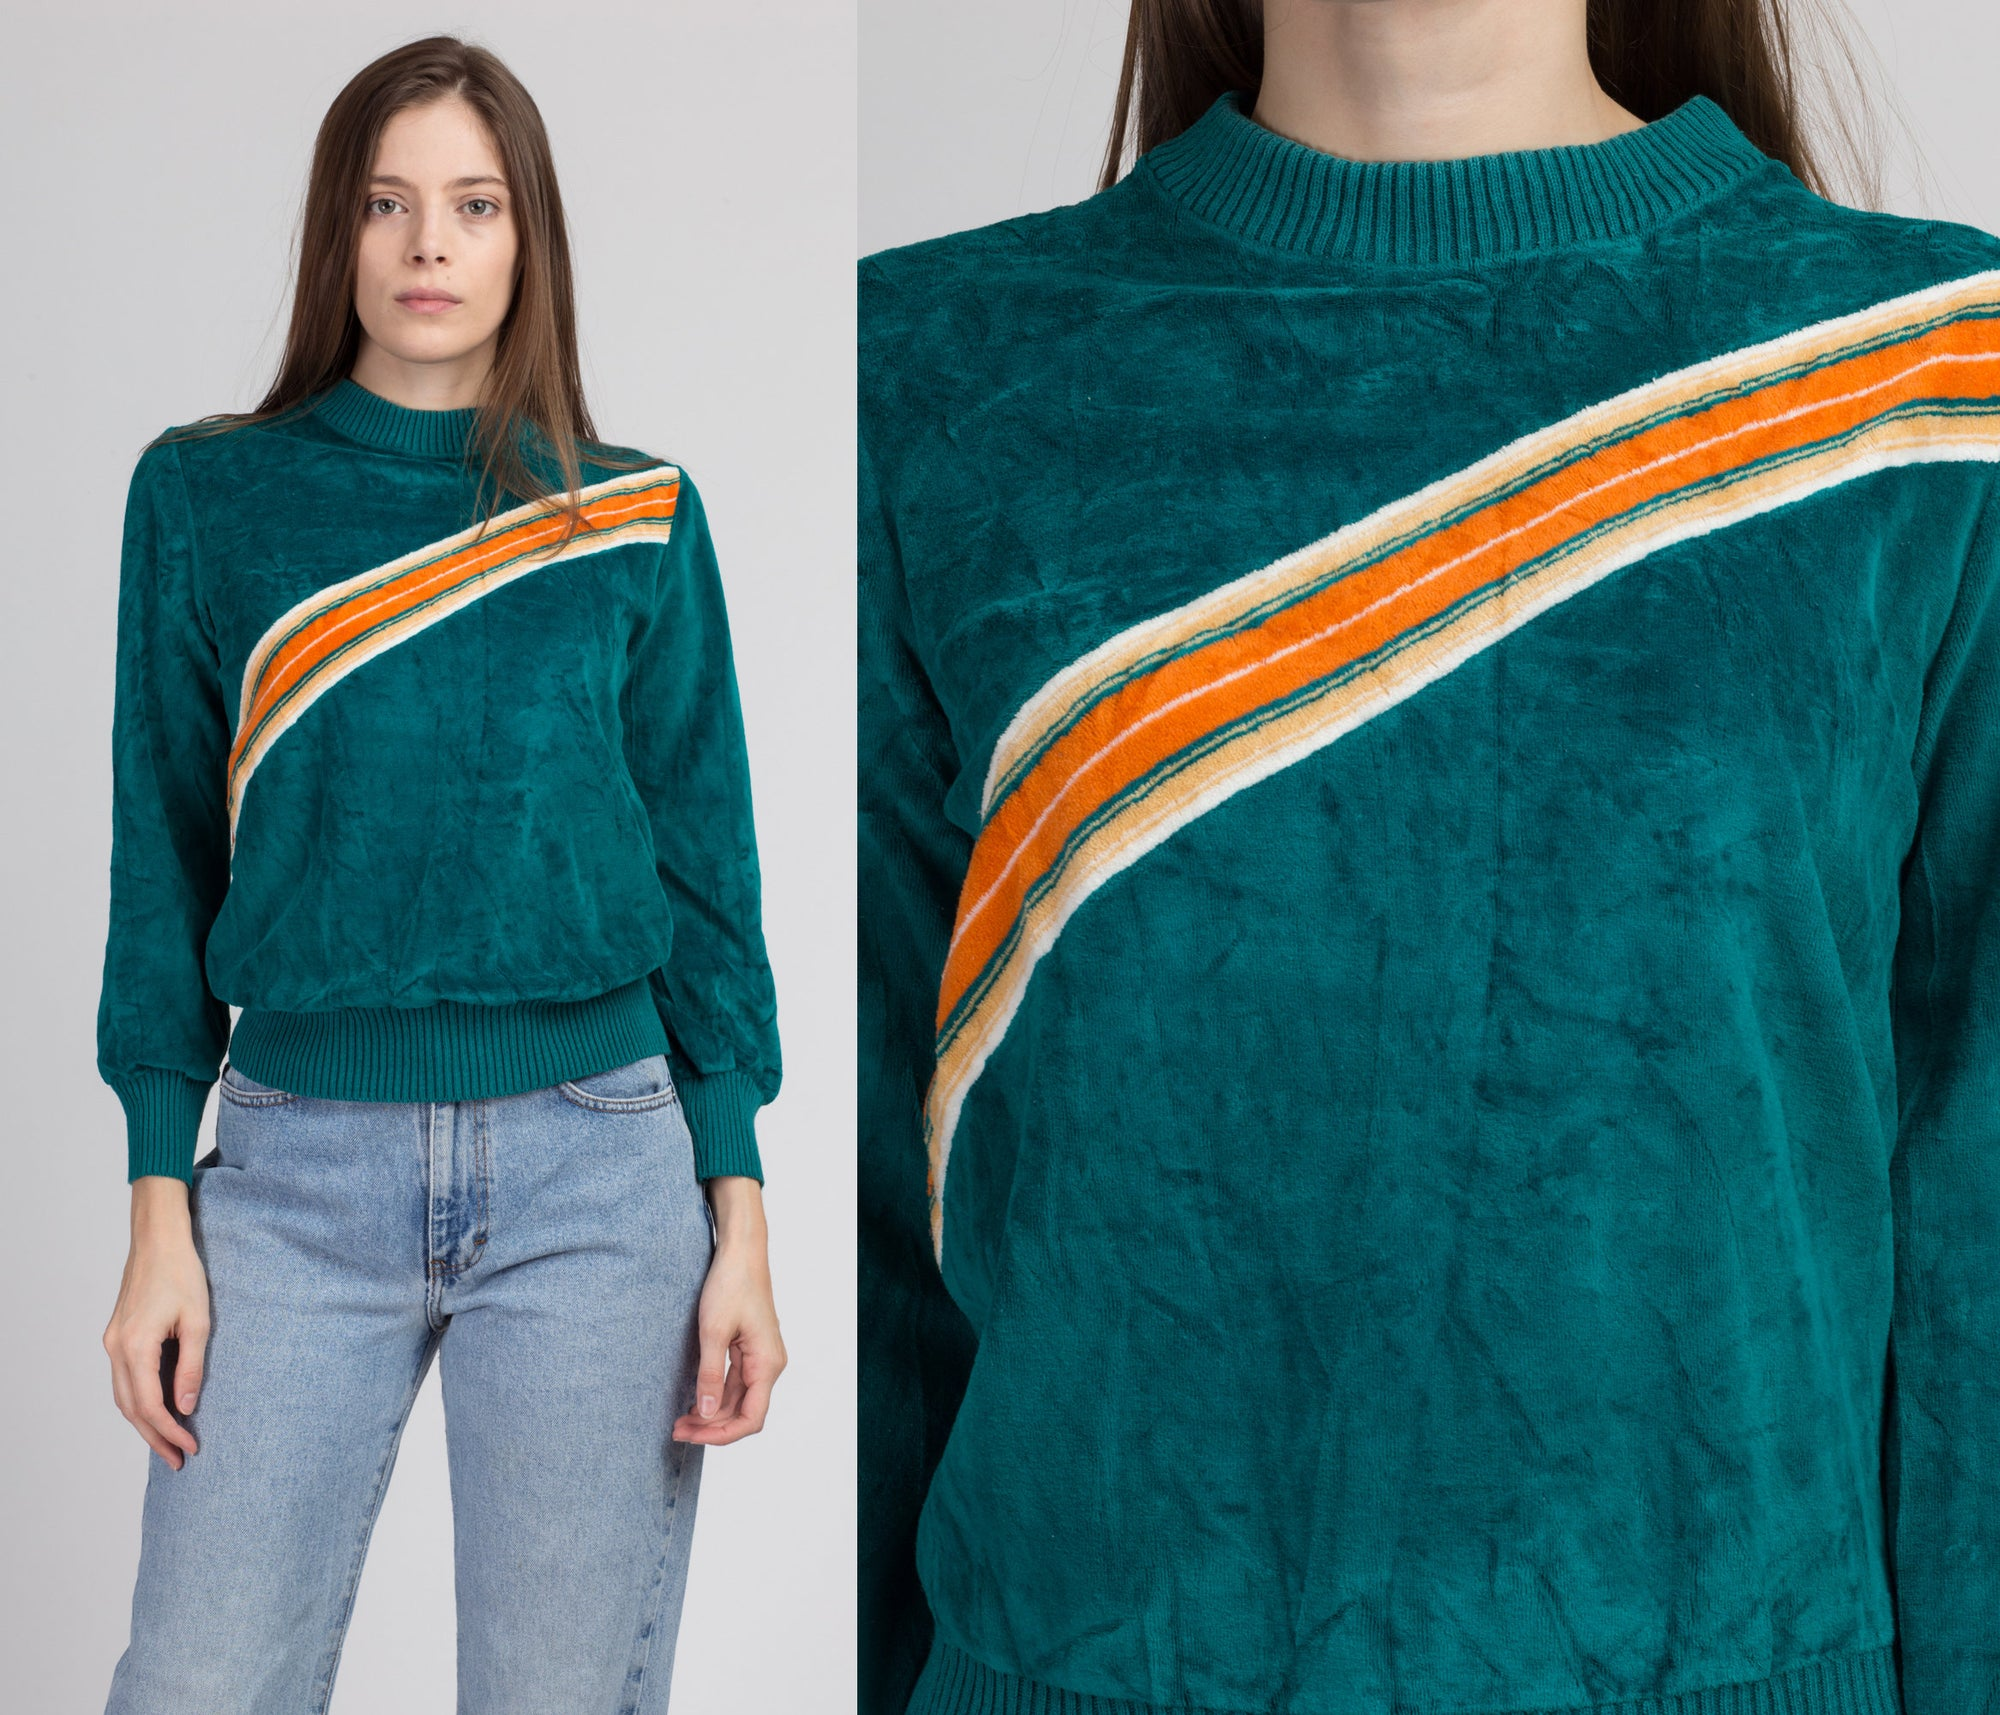 80s Velour Diagonal Striped Mockneck Sweatshirt - Medium